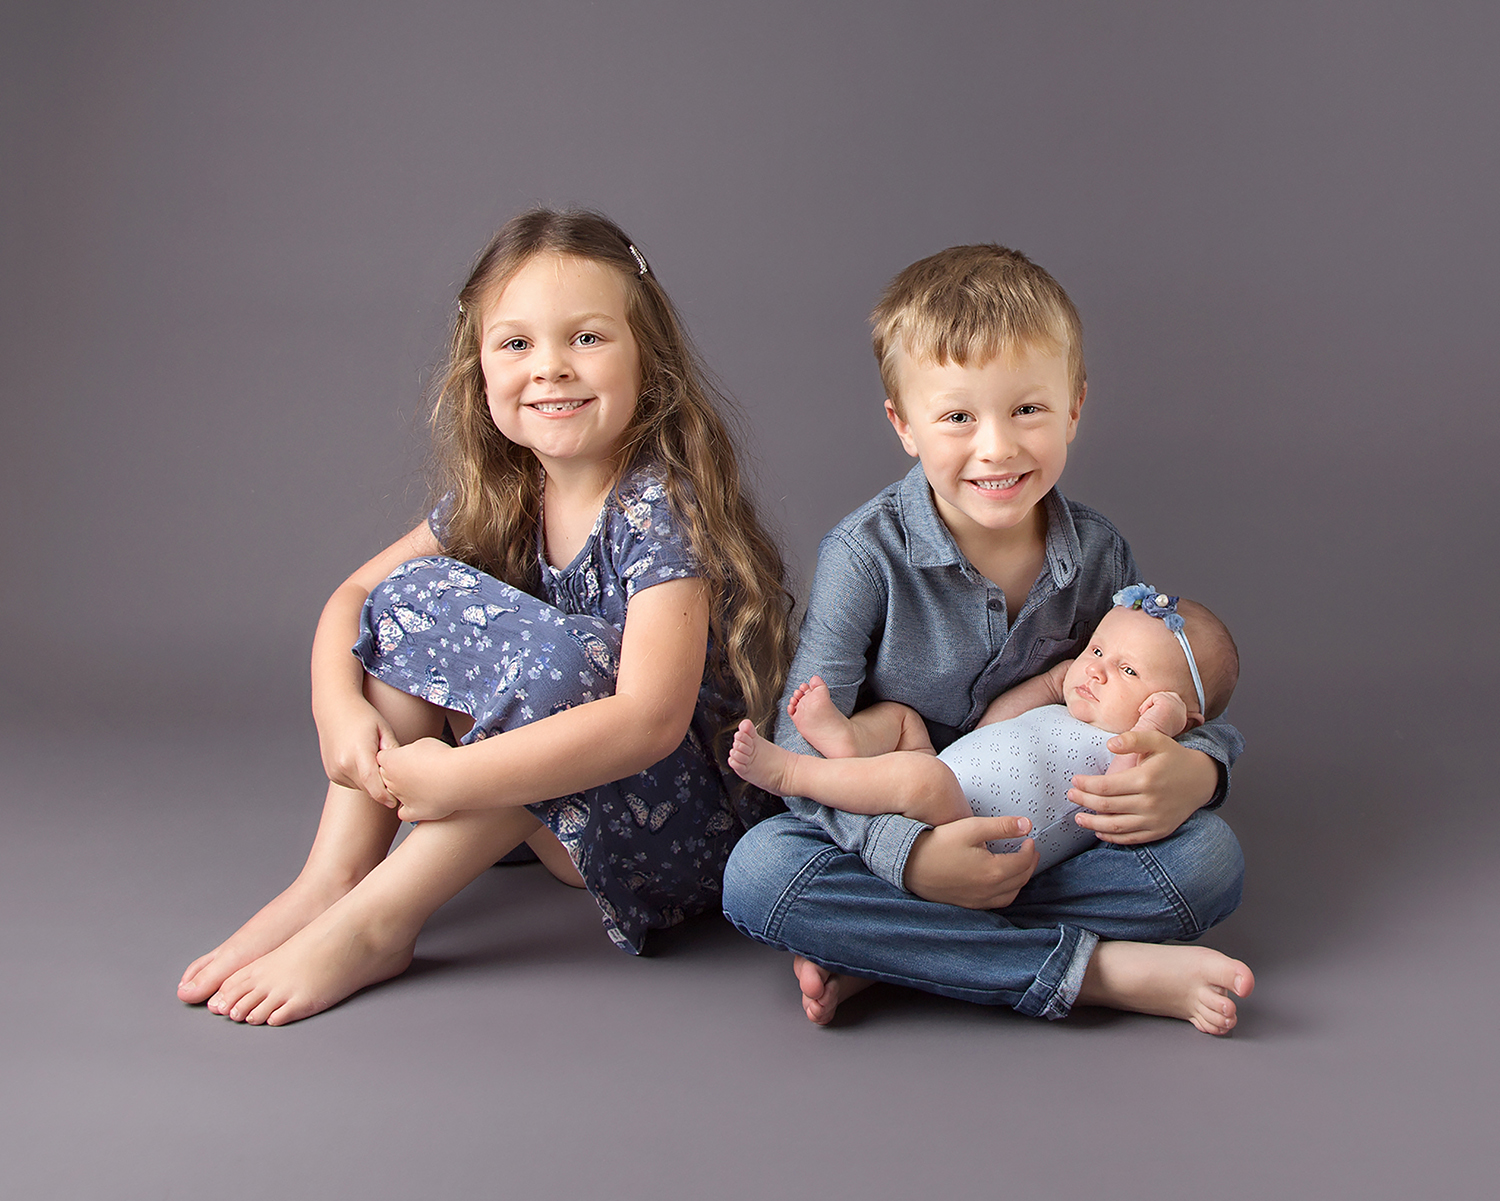 Elisabeth Franco Photographer children and families photoshoot in Gloucester